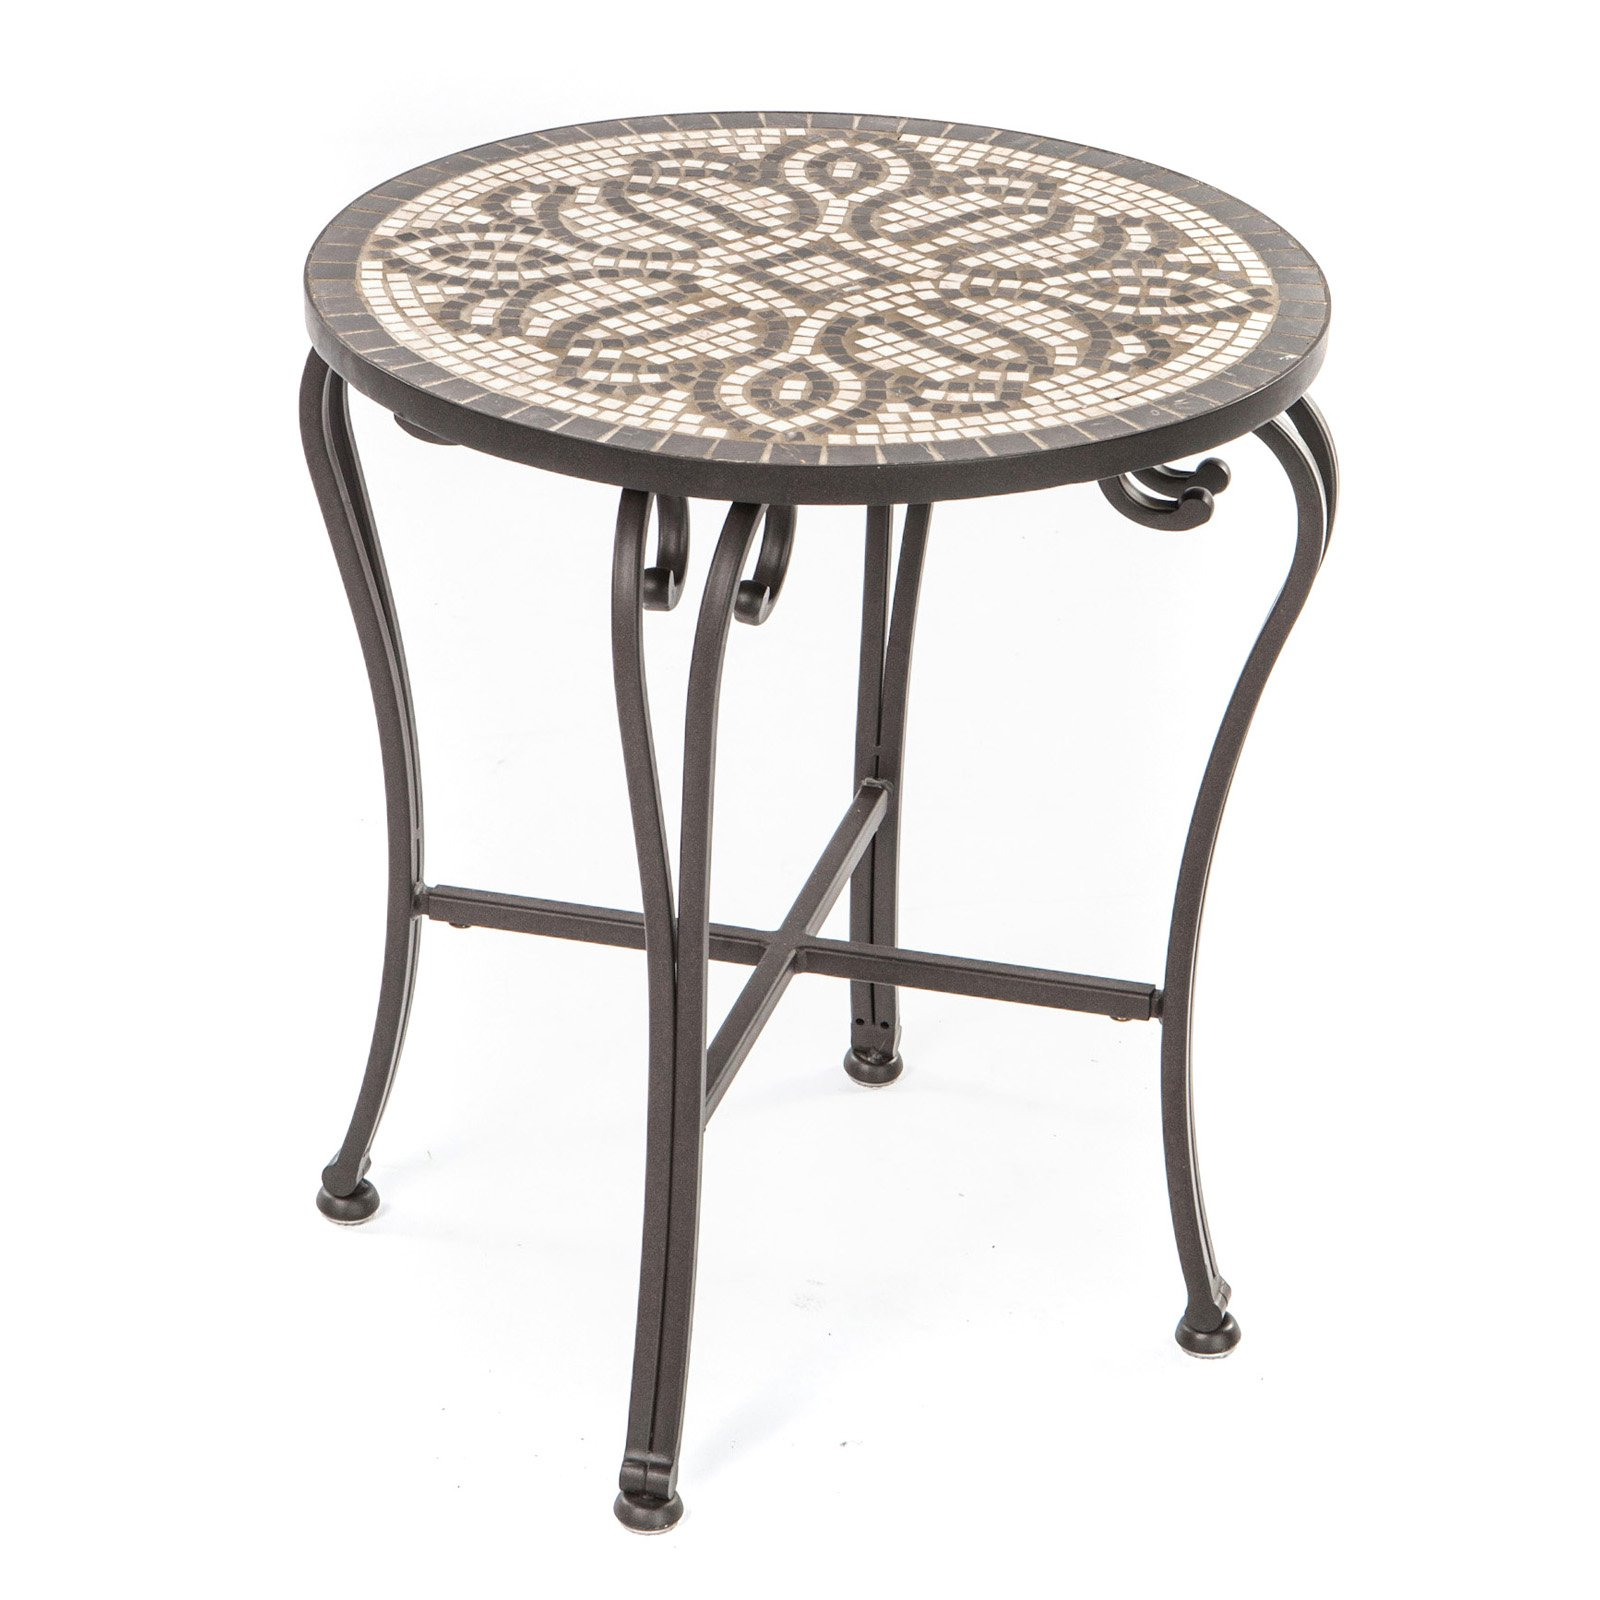 patio accent table darcylea design large tables wicker outdoor haworth furniture retro reproduction small metal side mainstays parsons desk with drawer legs pottery barn drum